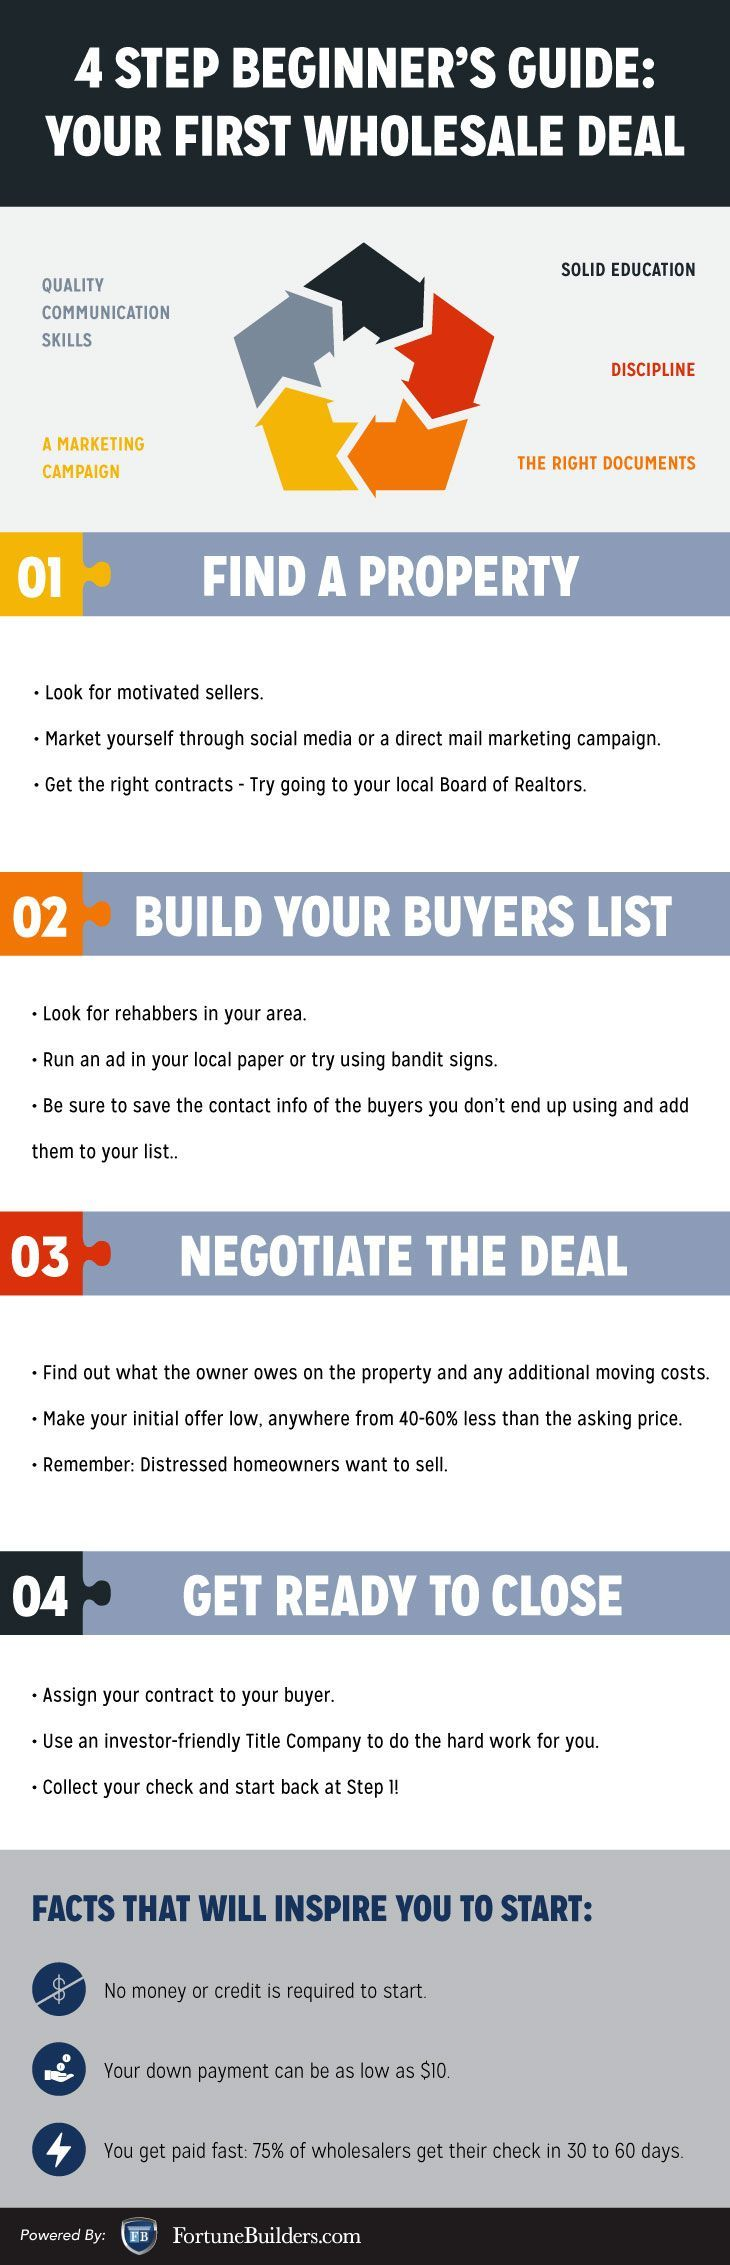 Looking to pursue a career in real estate investing? Consider a wholesale deal. Just follow our simple 4 step guide to get started.